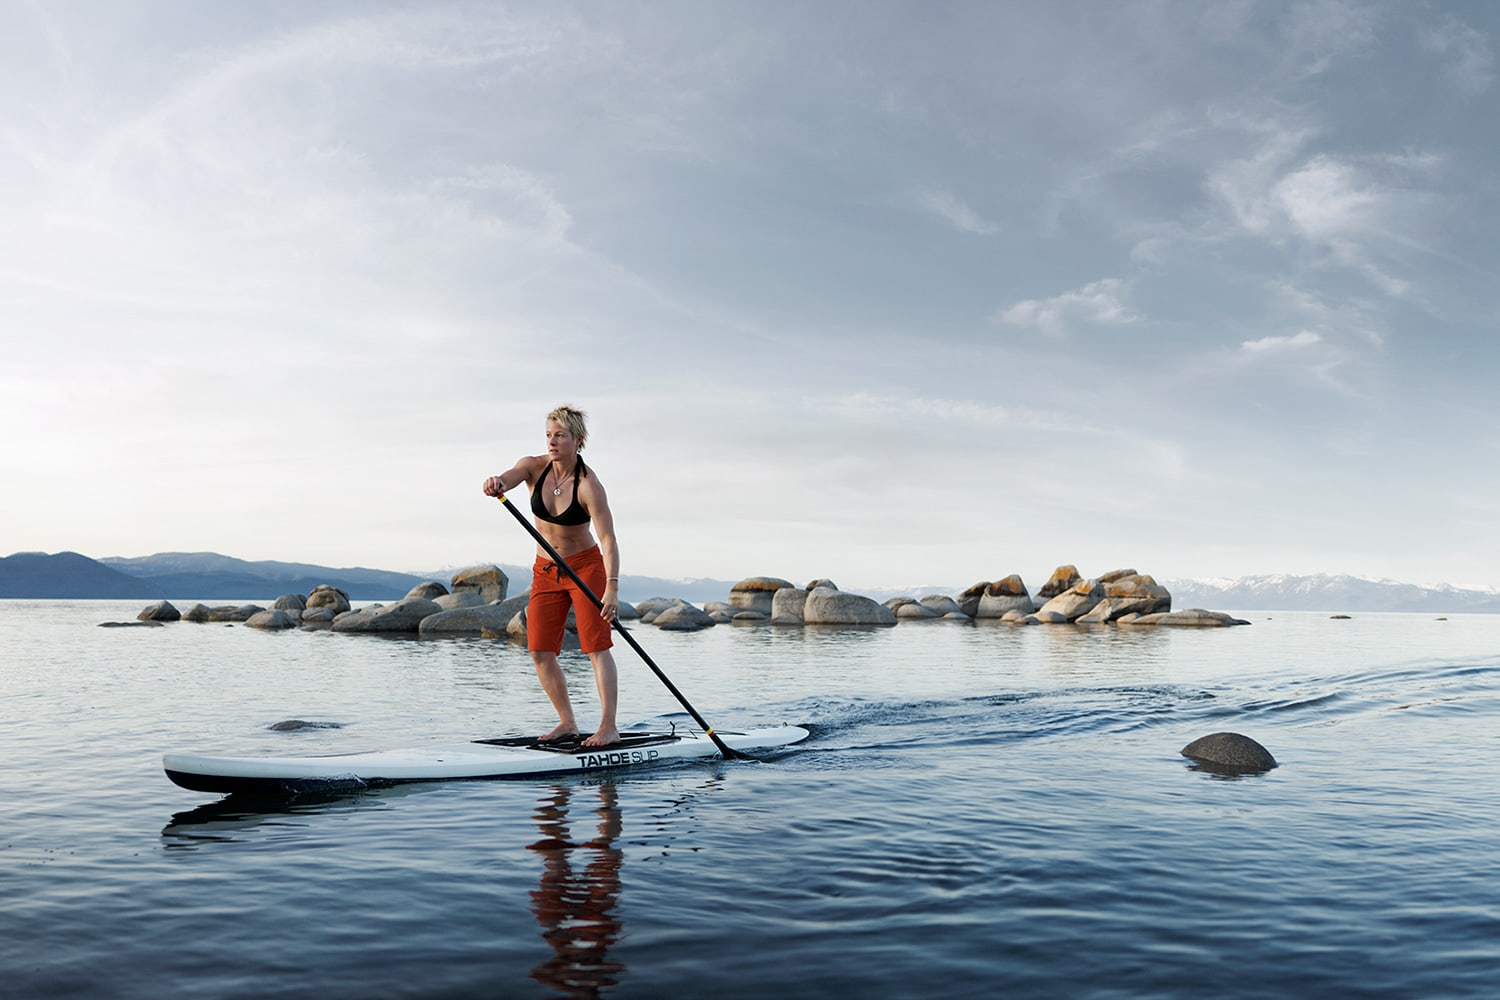 Active-Lifestyle-woman-paddle-boarding-on-lake-rocks-Rod-McLean